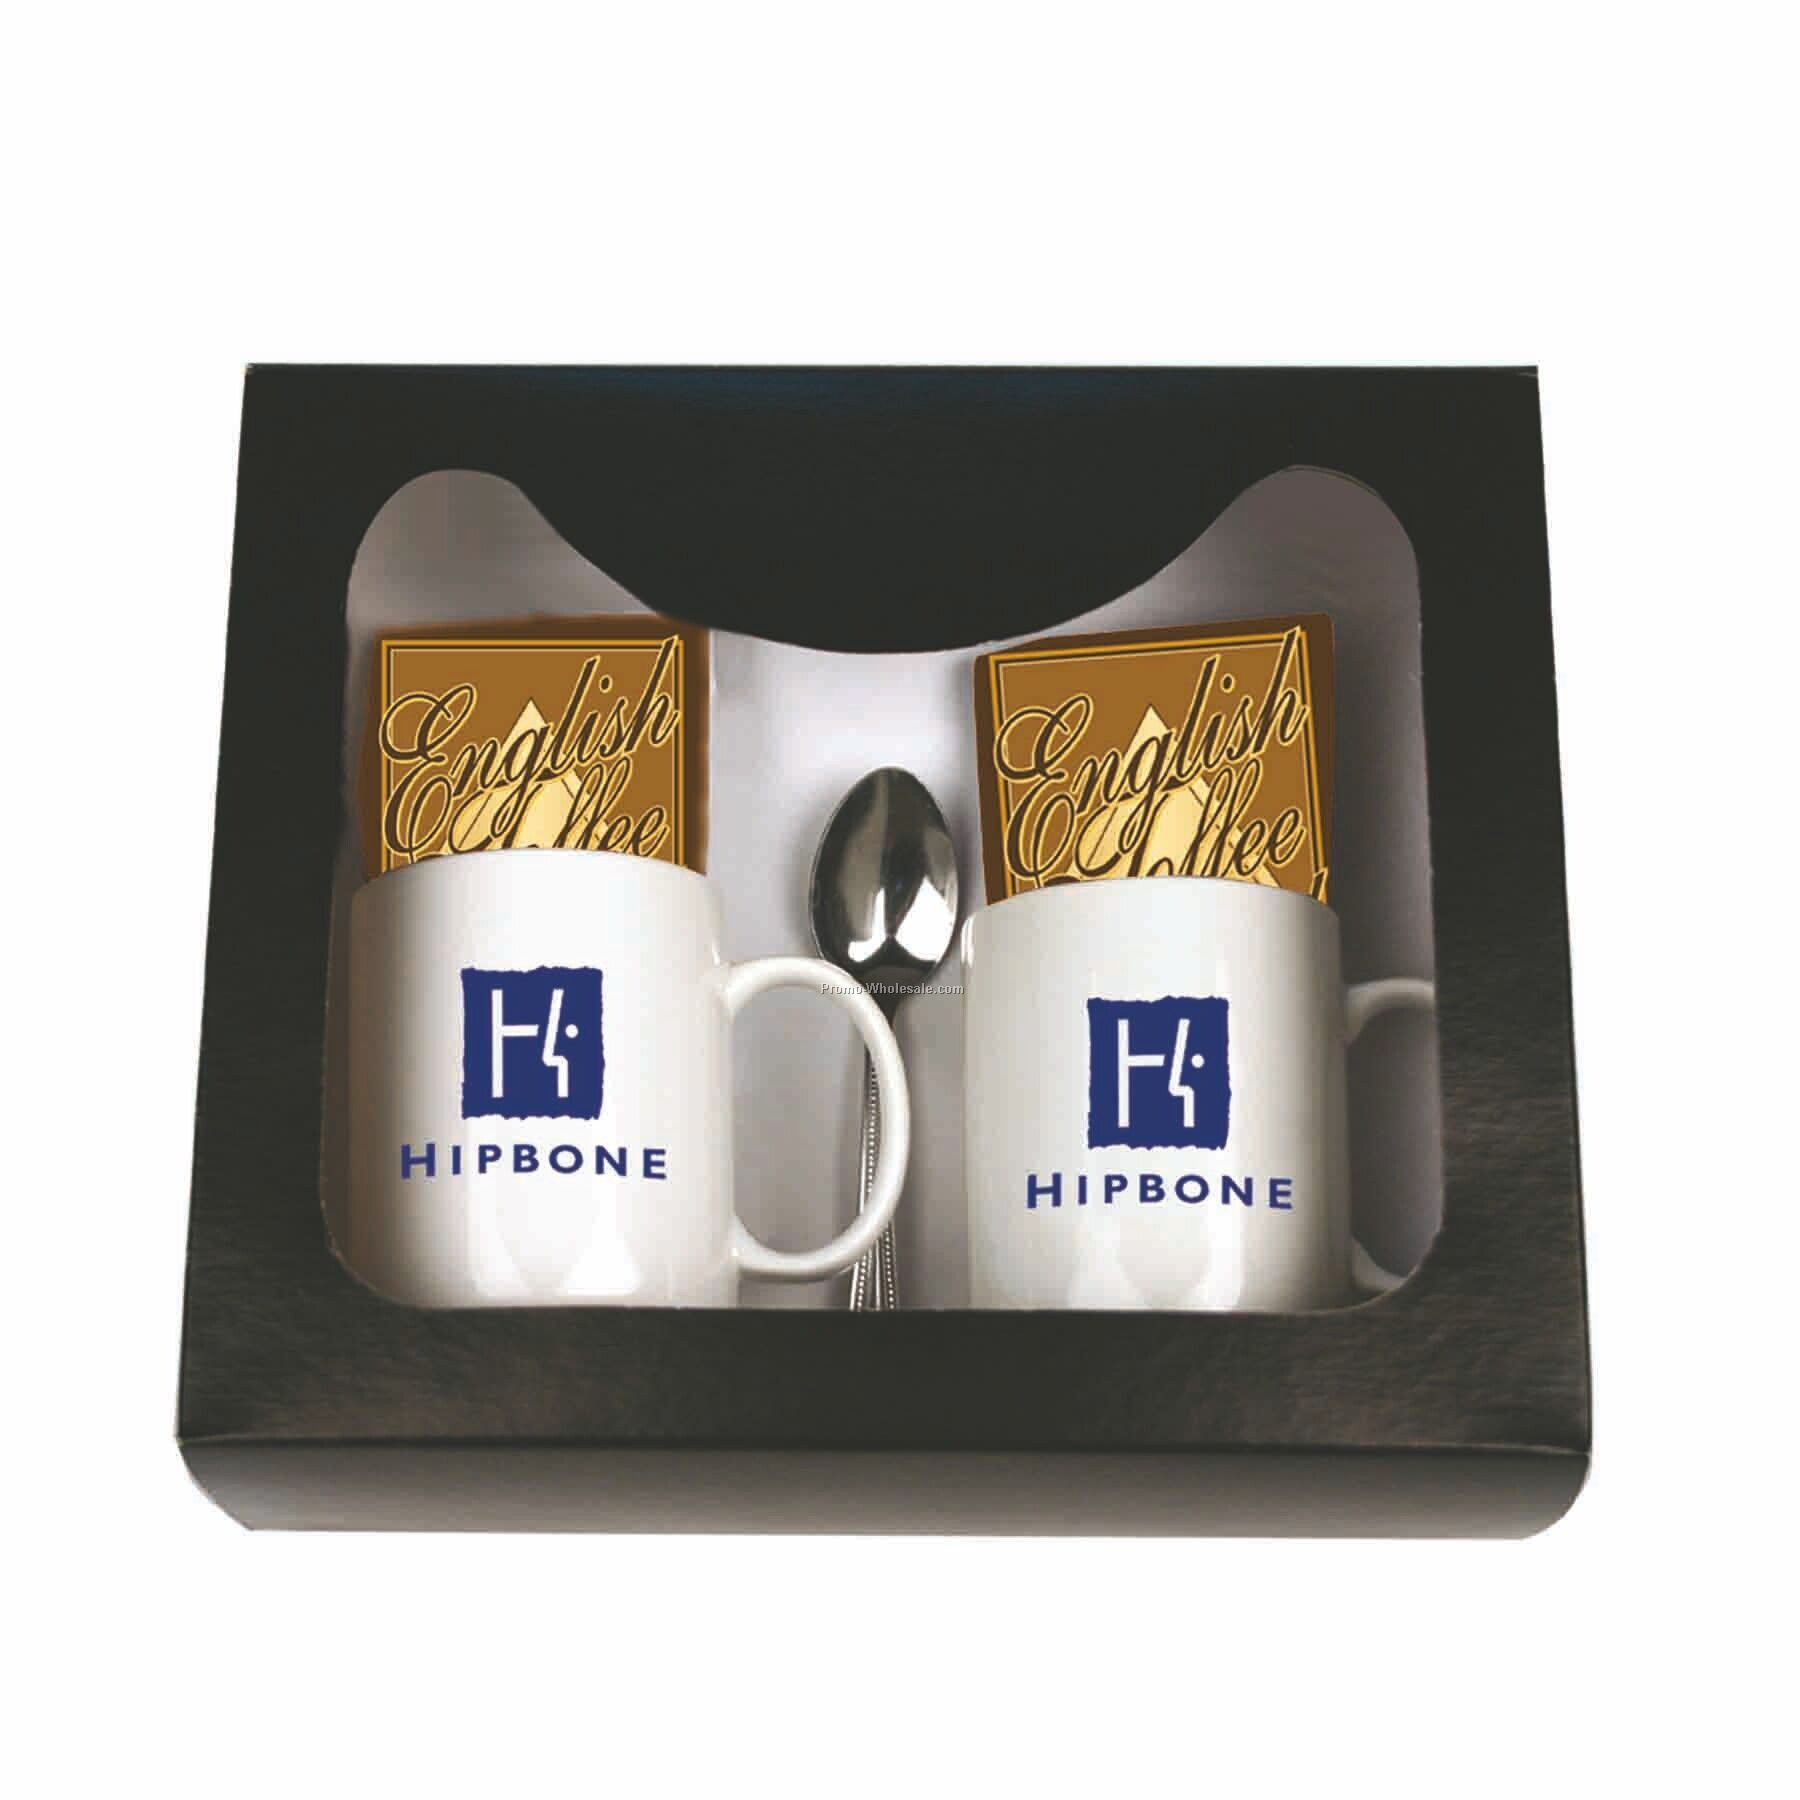 Hot Chocolate For 2 Gourmet Gift Set (English Truffle)